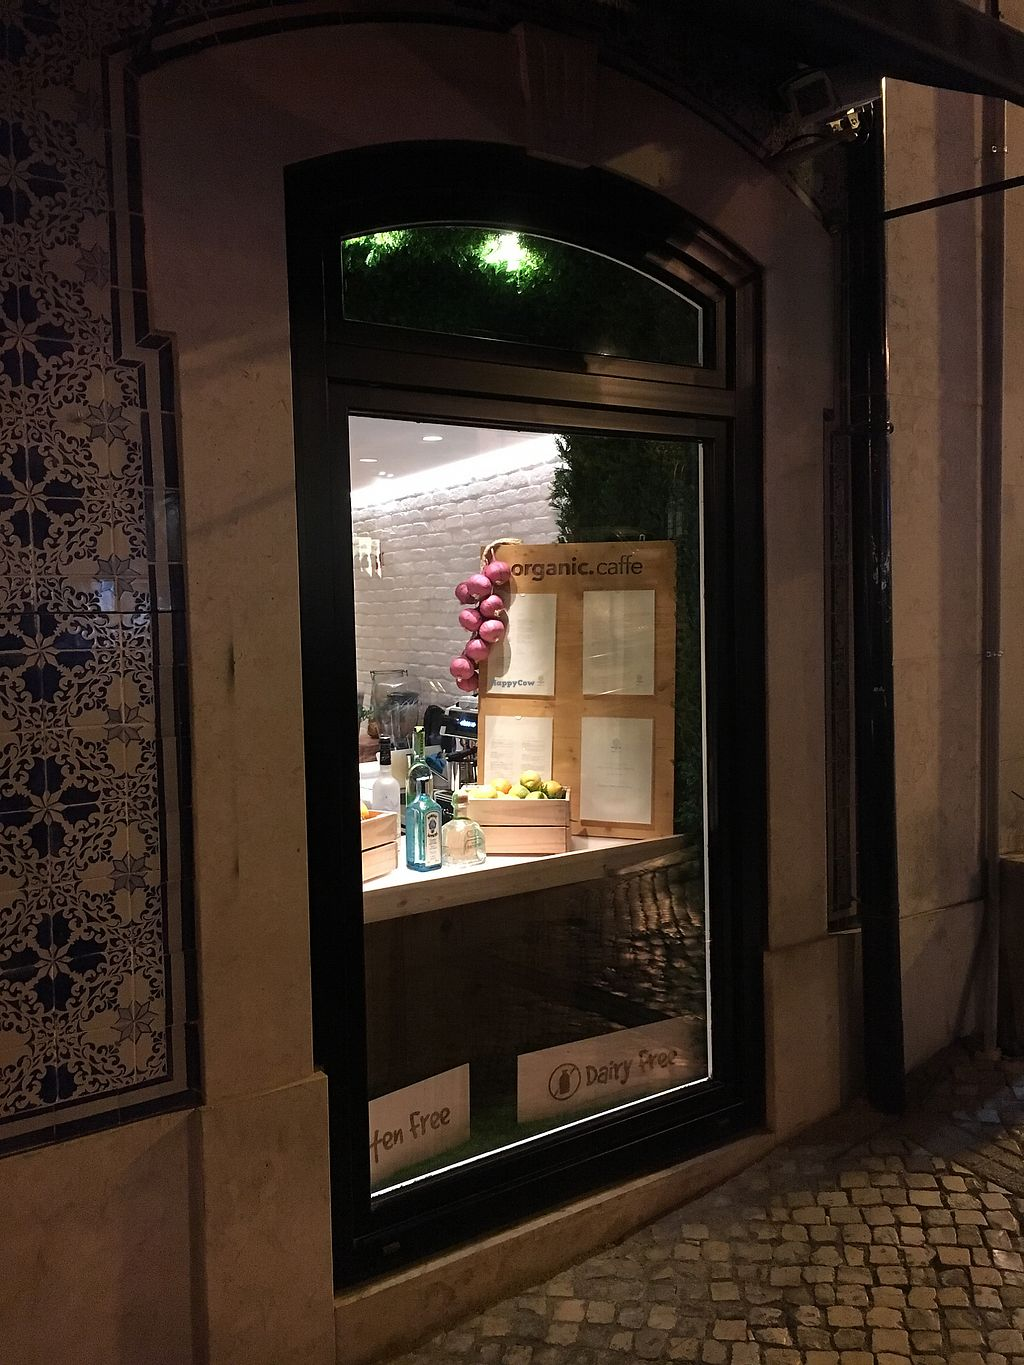 """Photo of Organic Caffe - Chiado  by <a href=""""/members/profile/hack_man"""">hack_man</a> <br/>Outside  <br/> September 9, 2017  - <a href='/contact/abuse/image/99667/302629'>Report</a>"""